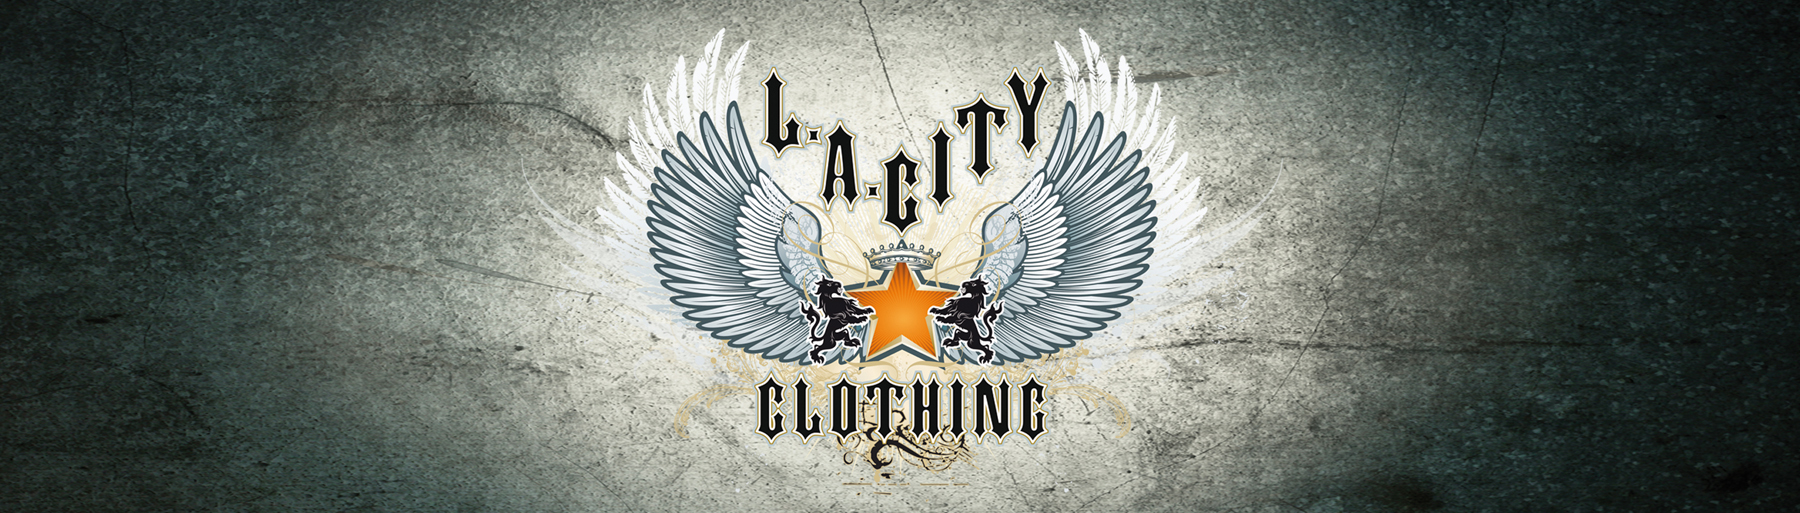 LA City Clothing Logo on dark grunge background